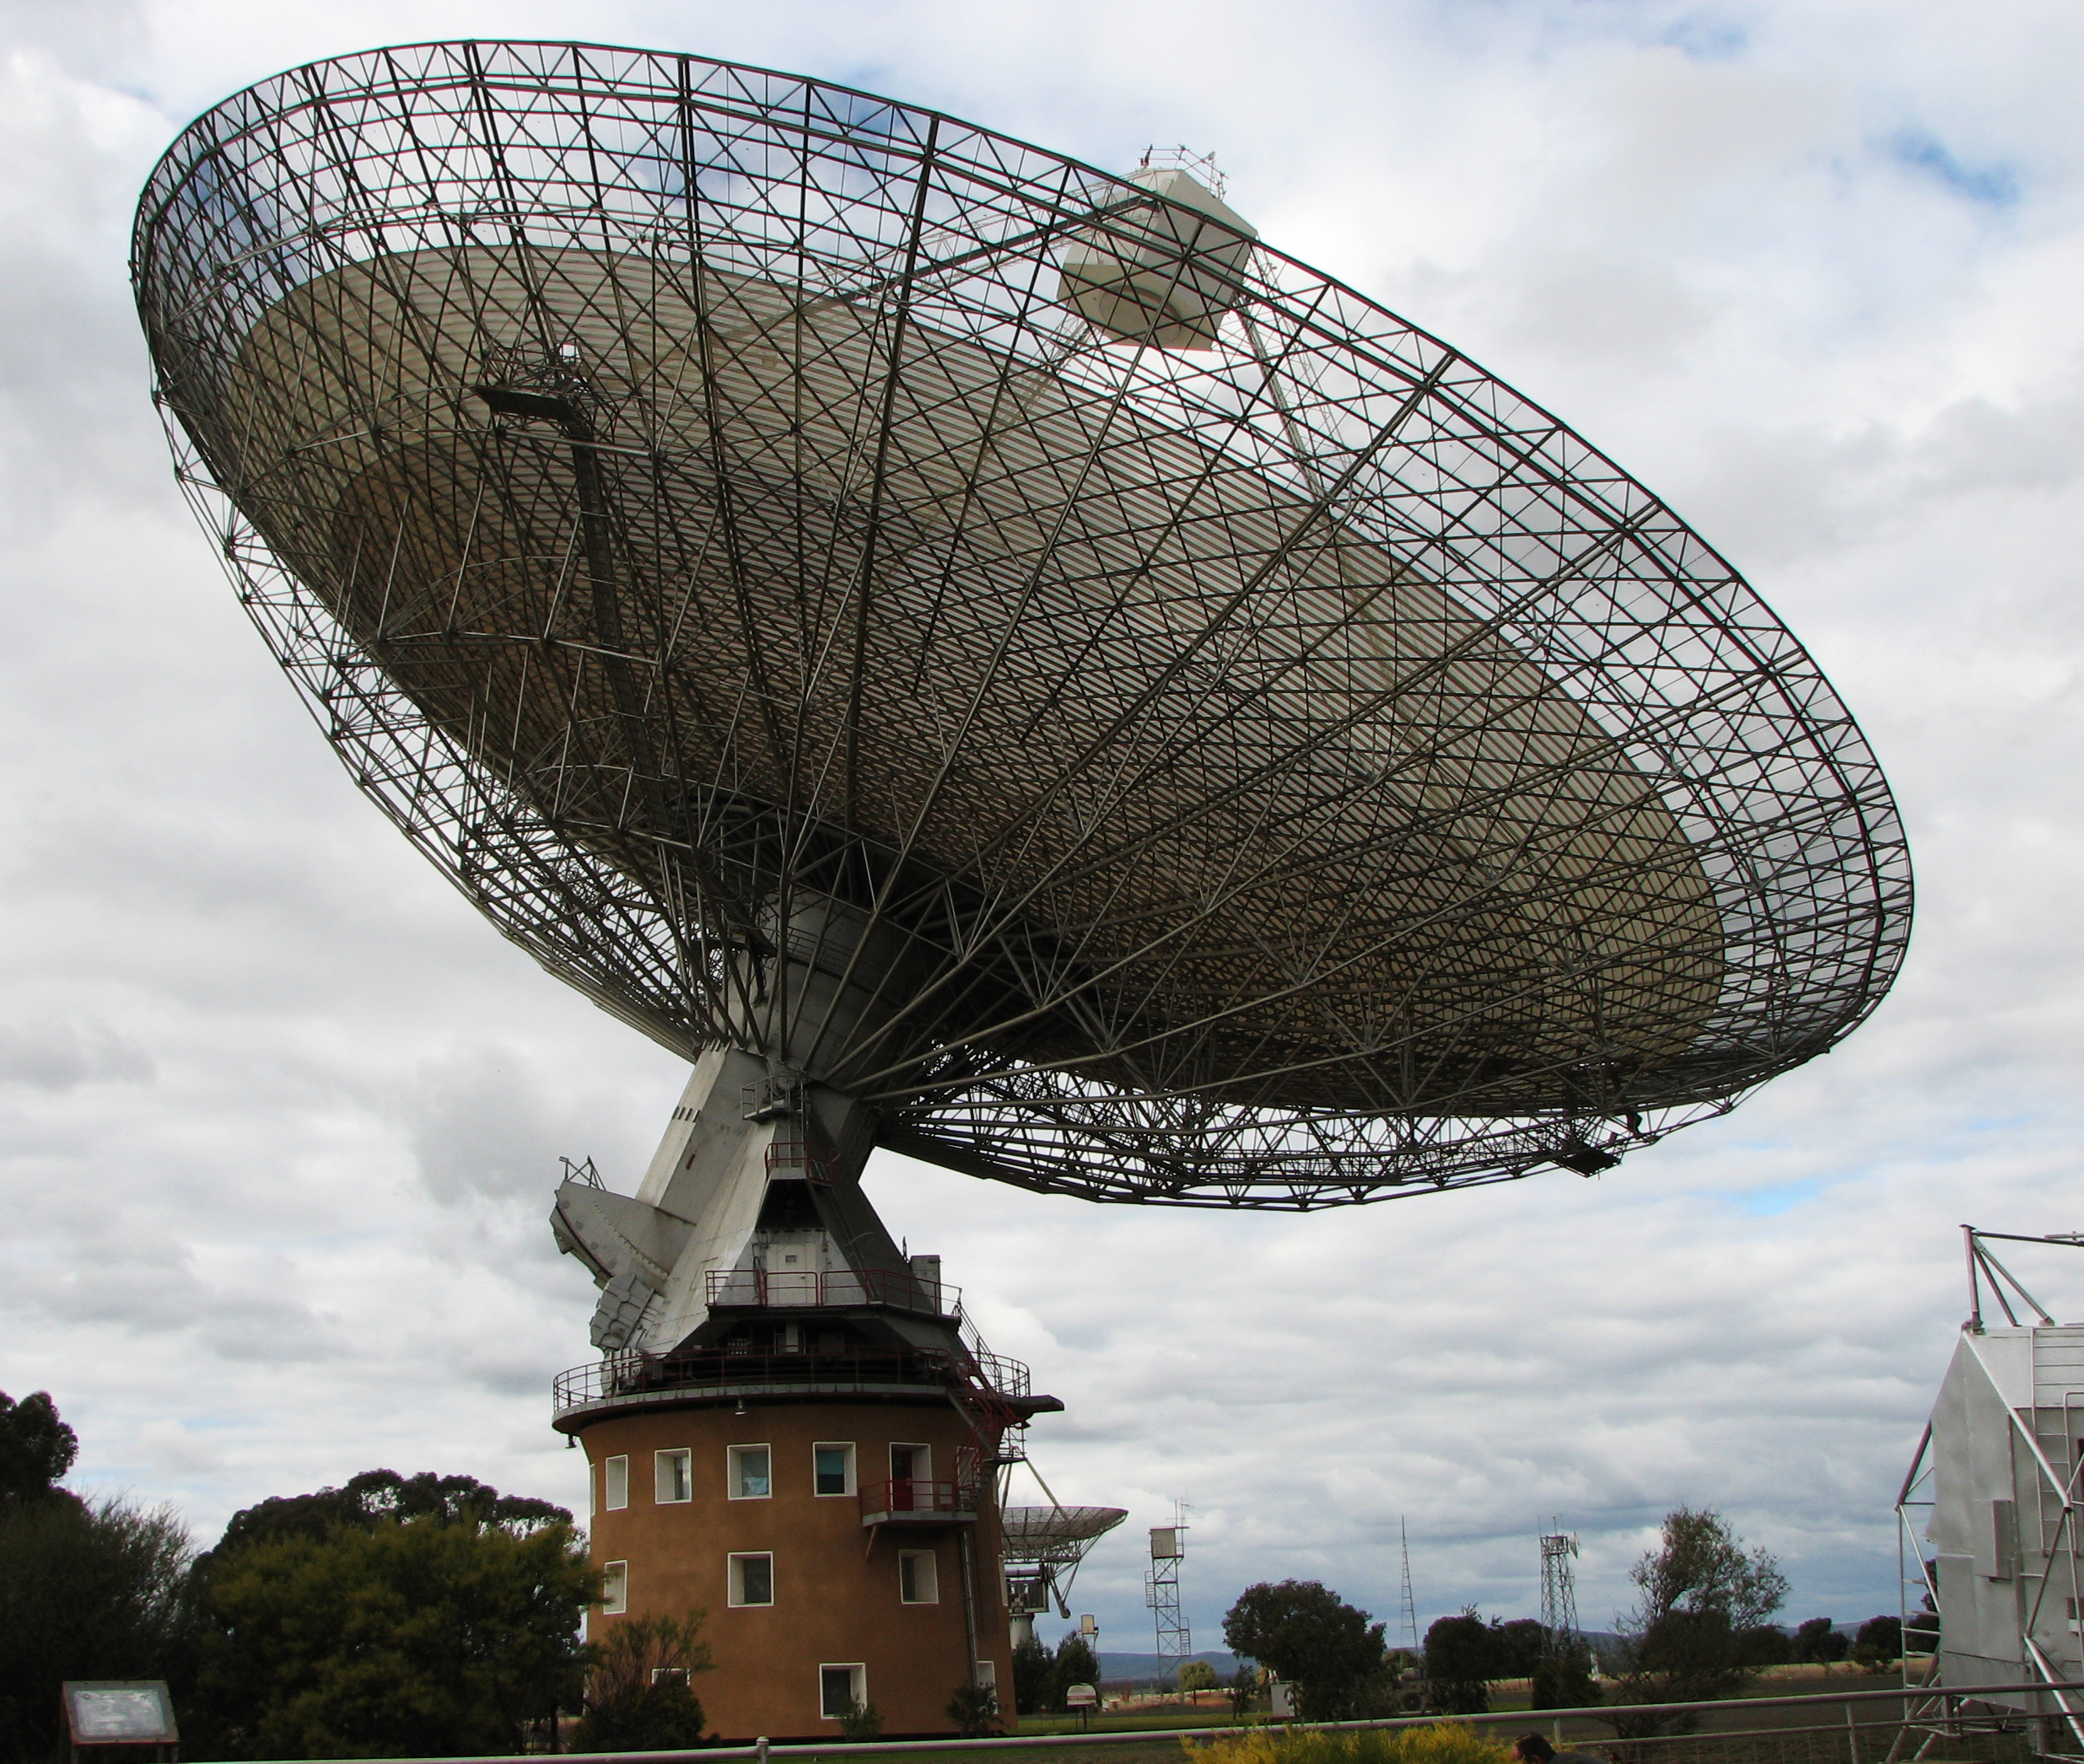 Parkes Radio Telescope Astronomers discover unexplained deep space explosions